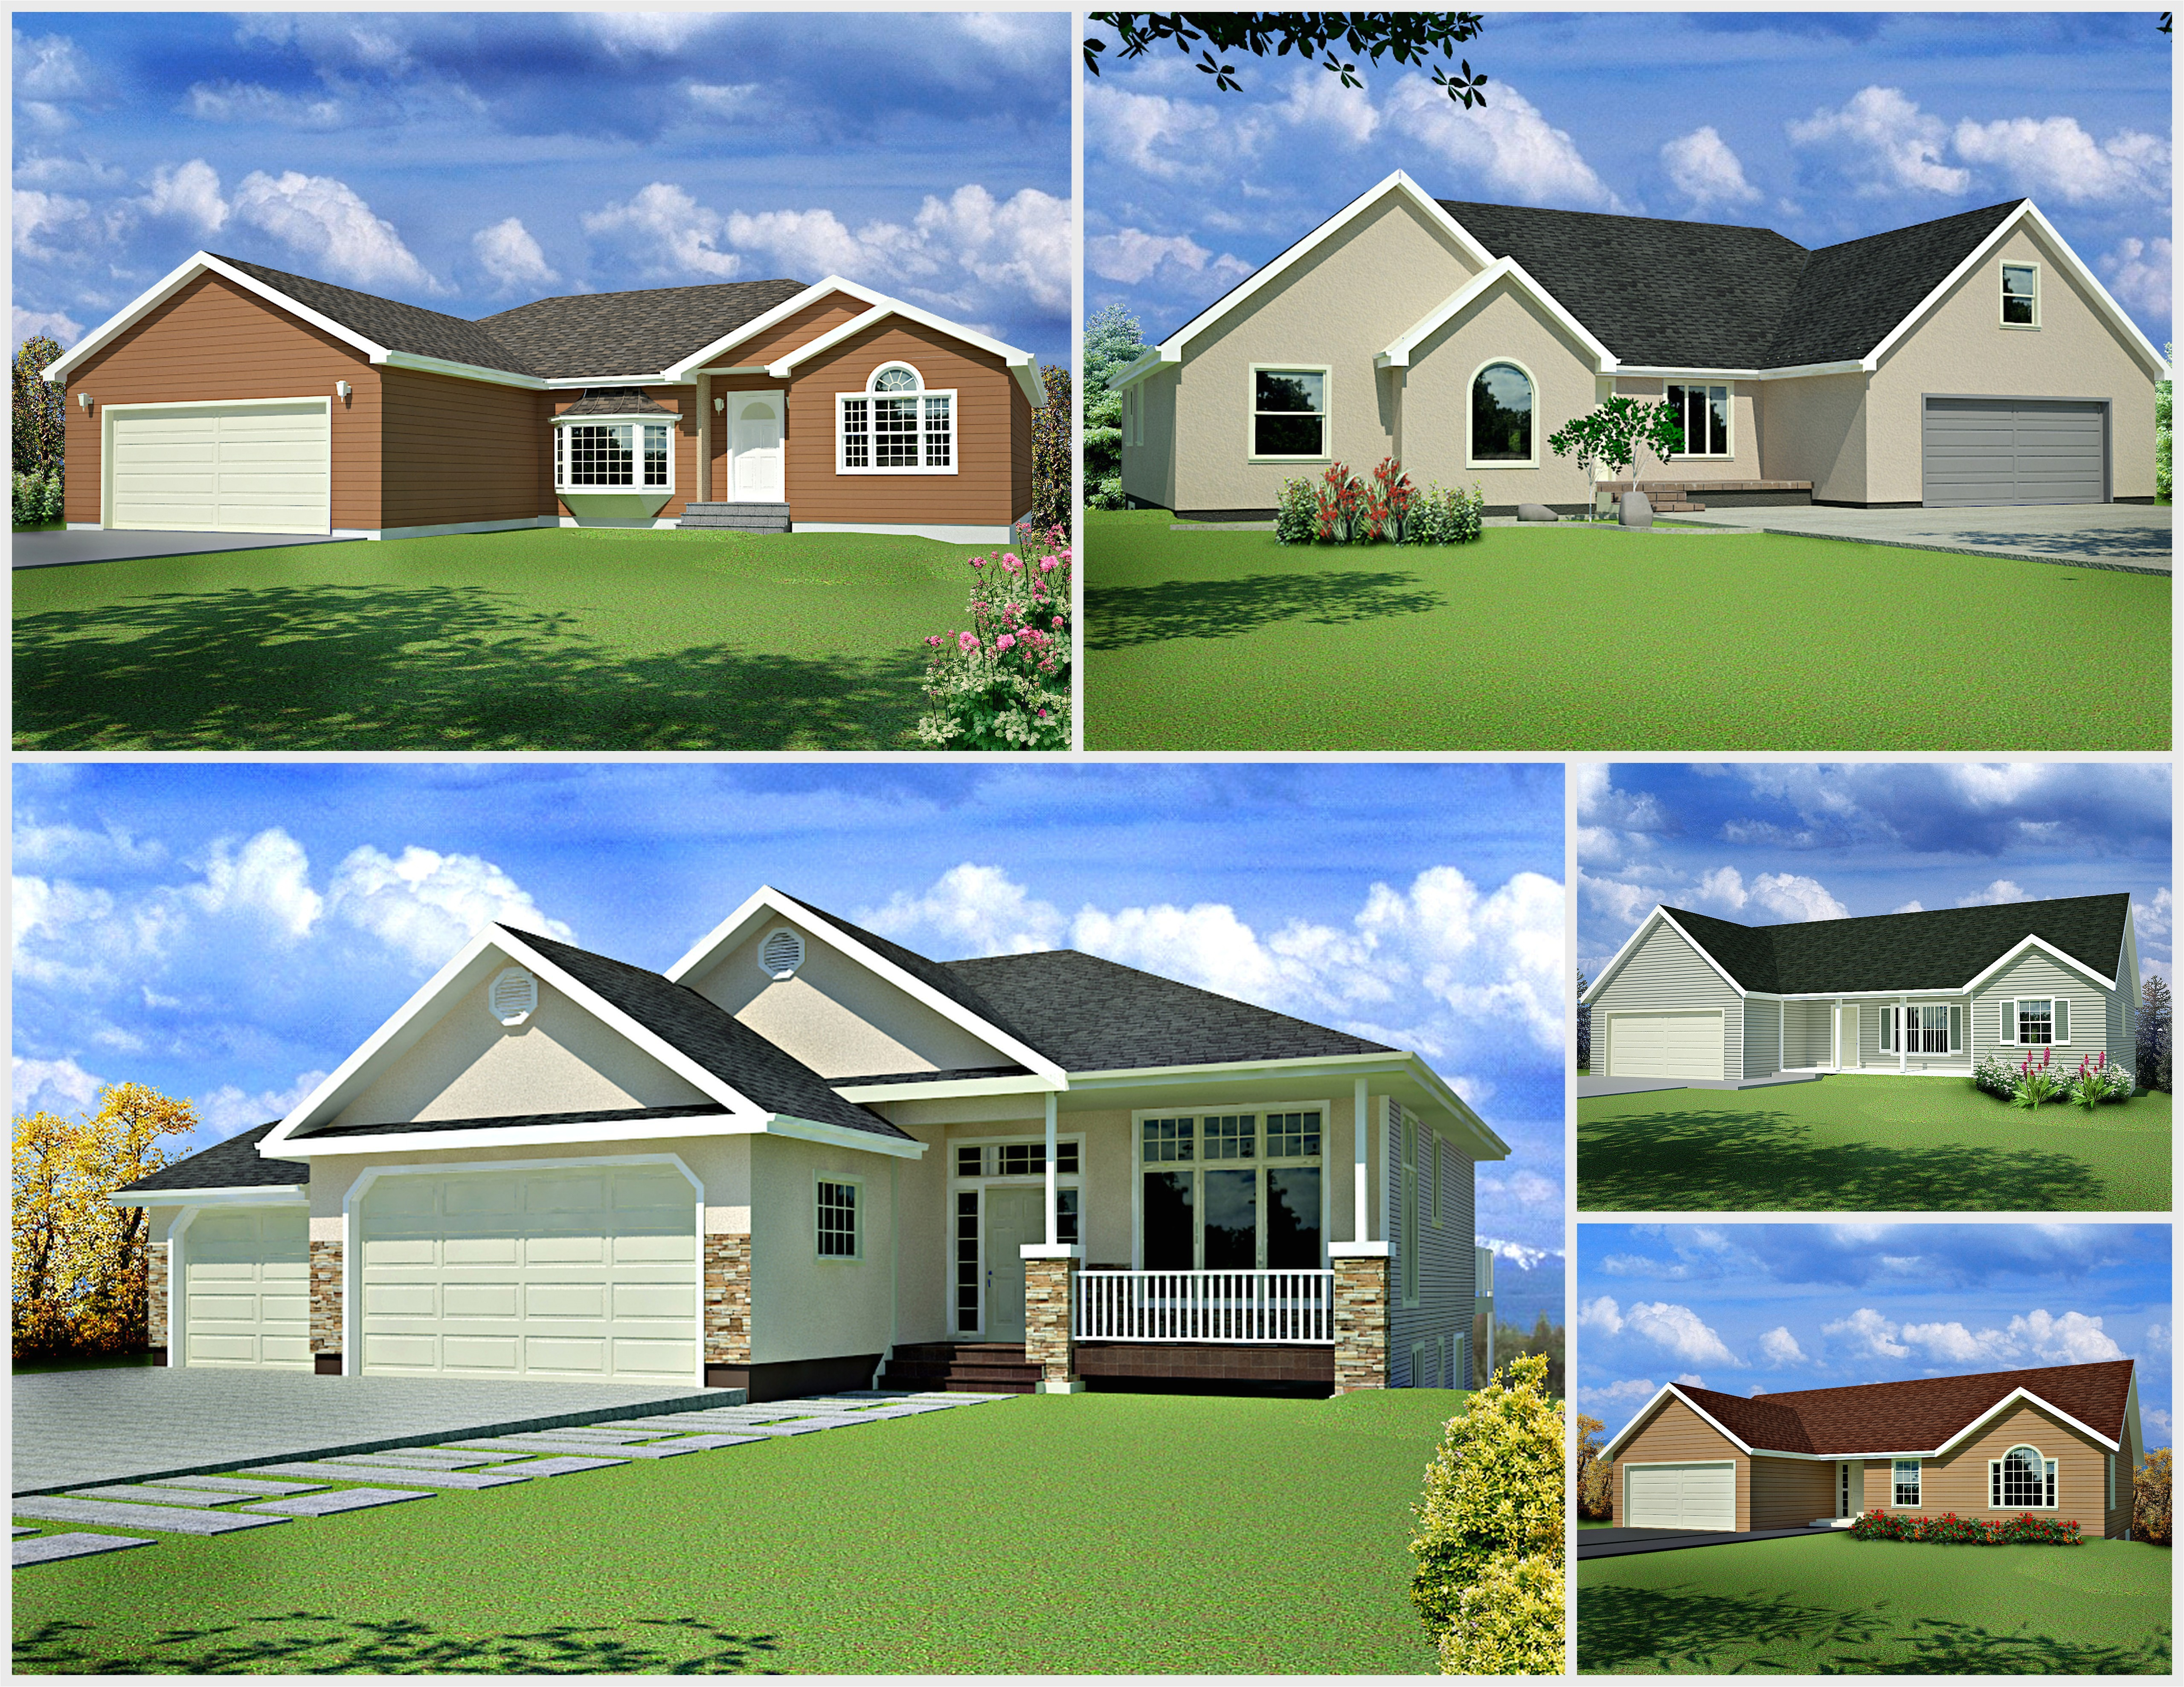 100 house plans printed and in dwg and pdf download the free color catalog